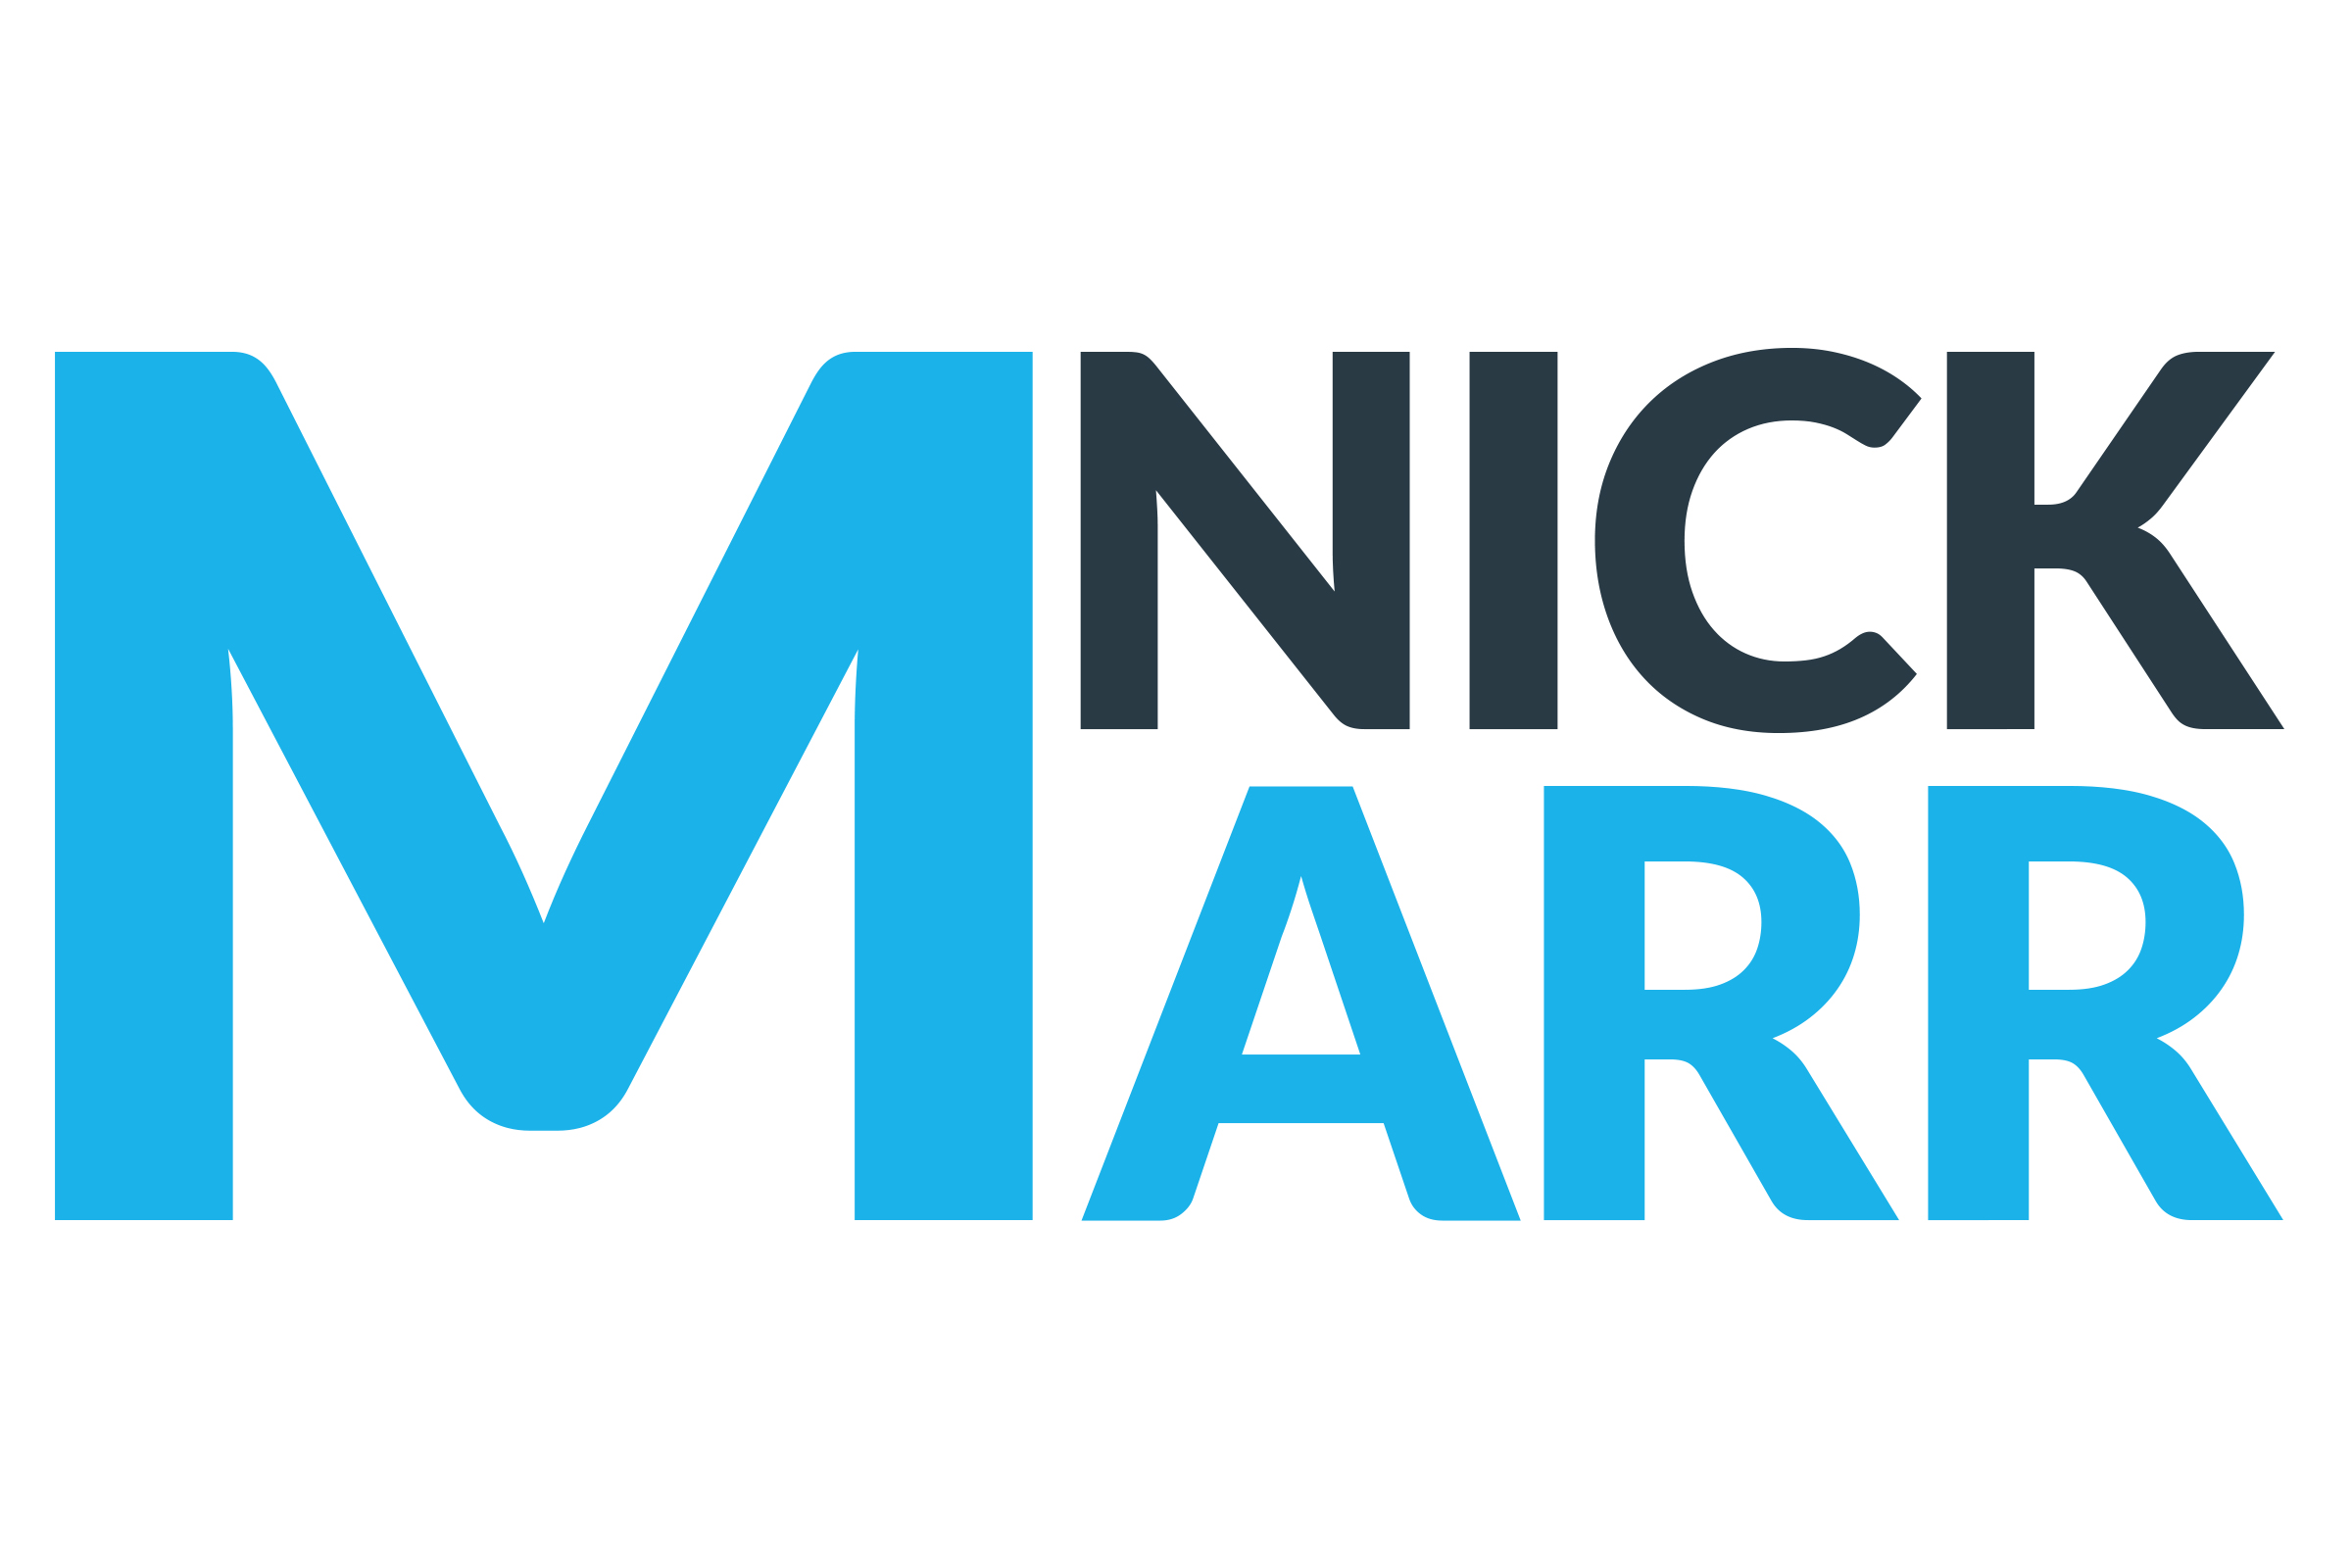 Nick Marr – Nicholas Marr – Digital Marketing Expert & Entrepreneur